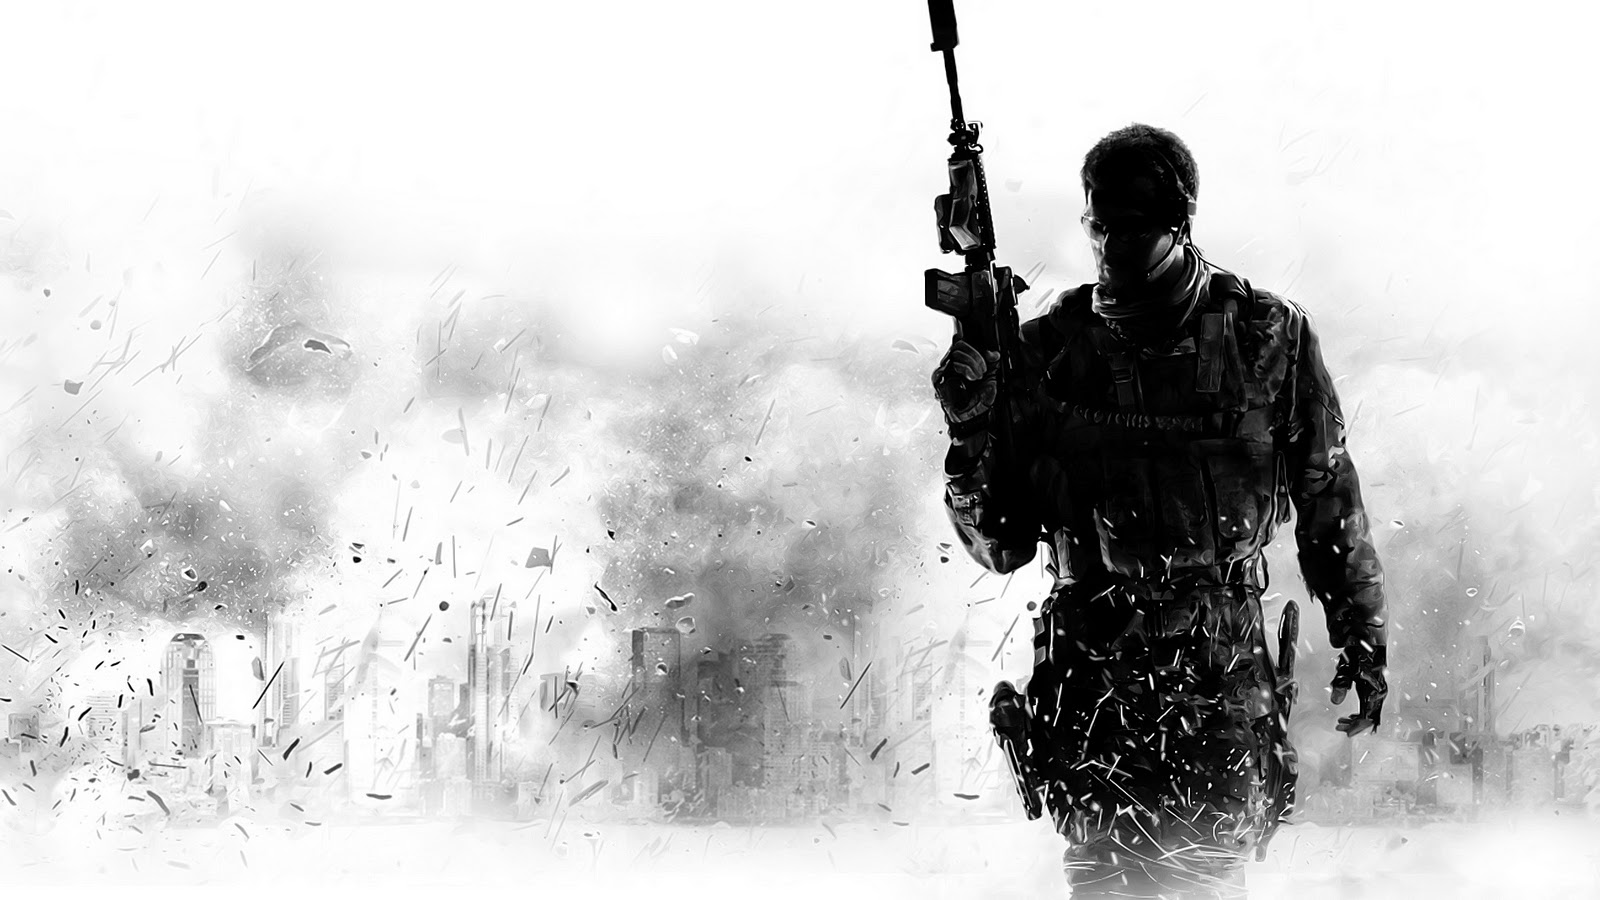 call of duty wallpapers 2012 quotes wallpapers